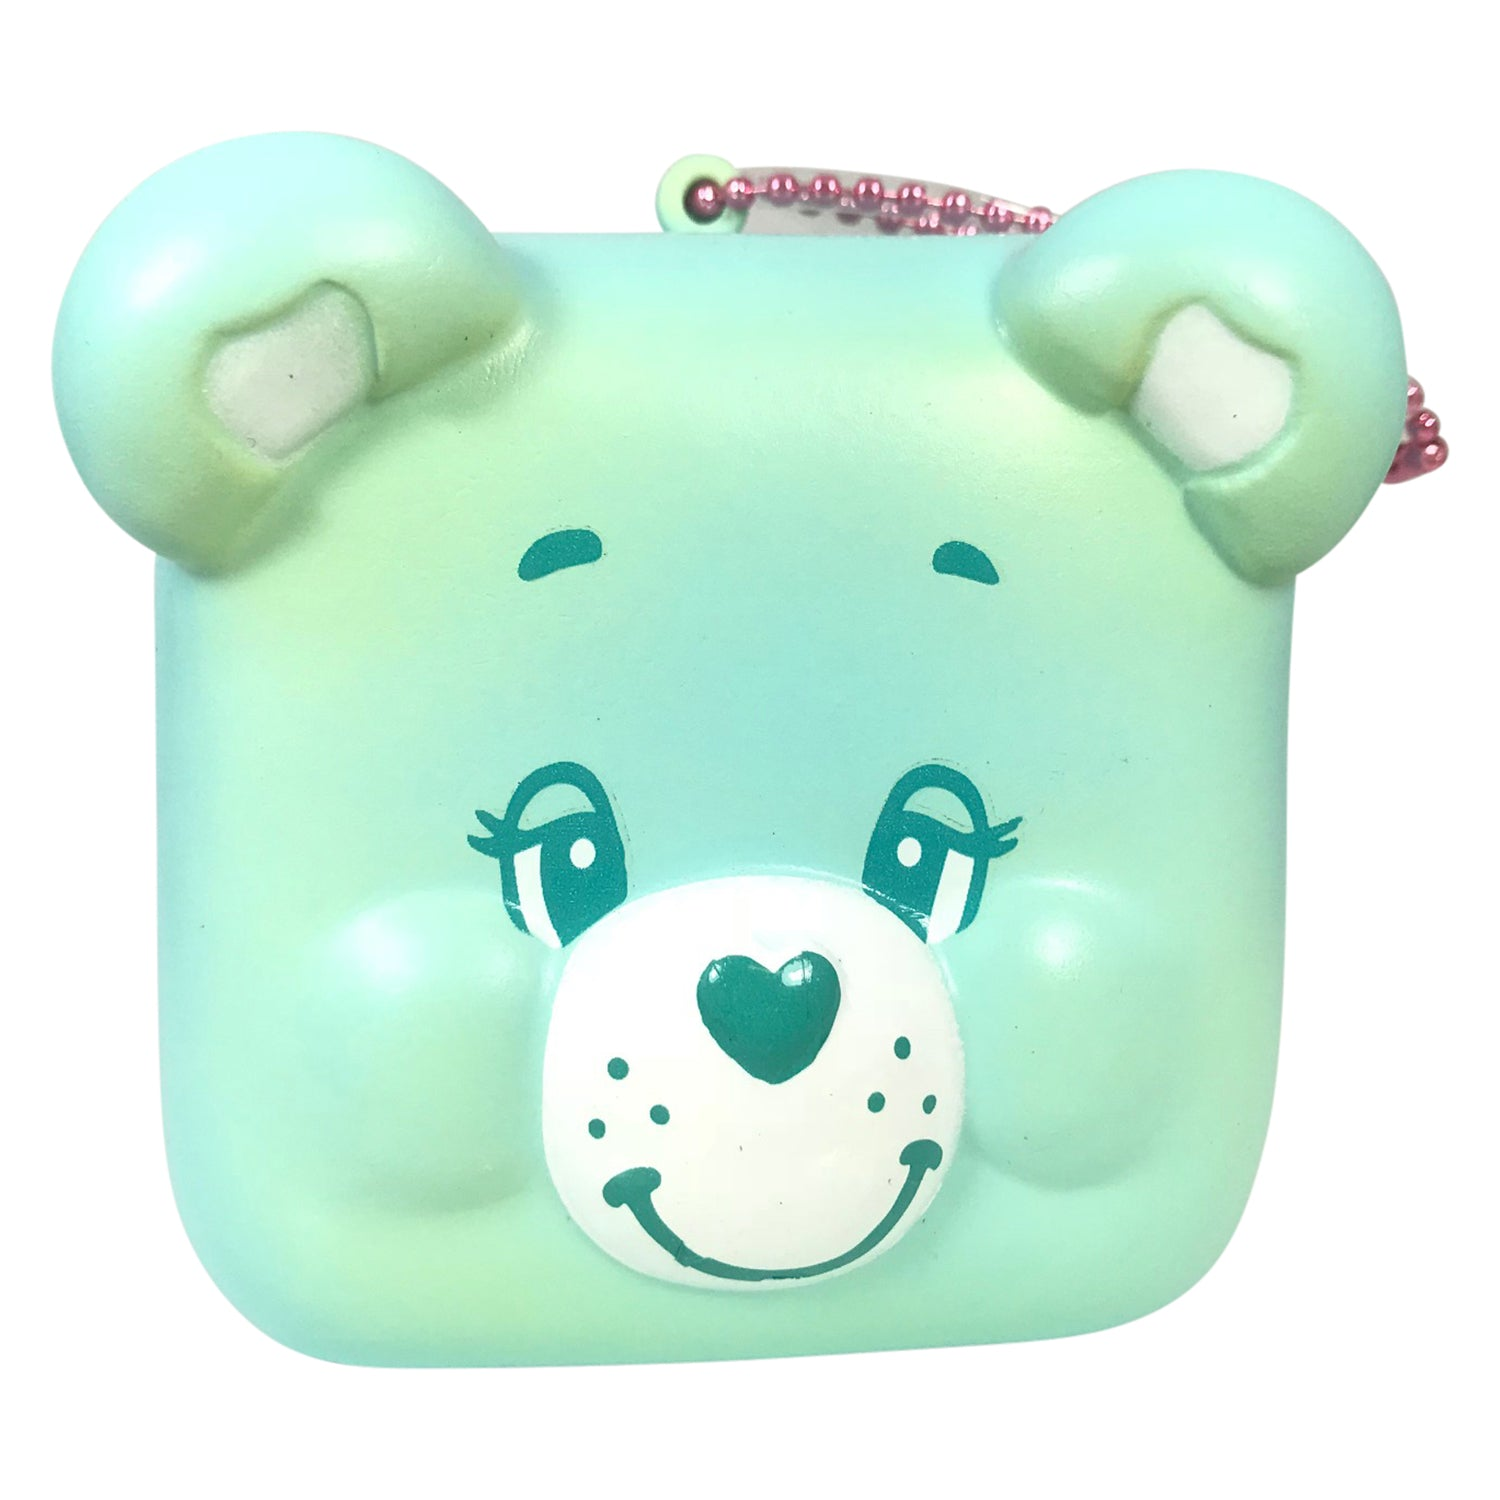 SUPER Cute Care Bear Head Squishy Mascot!